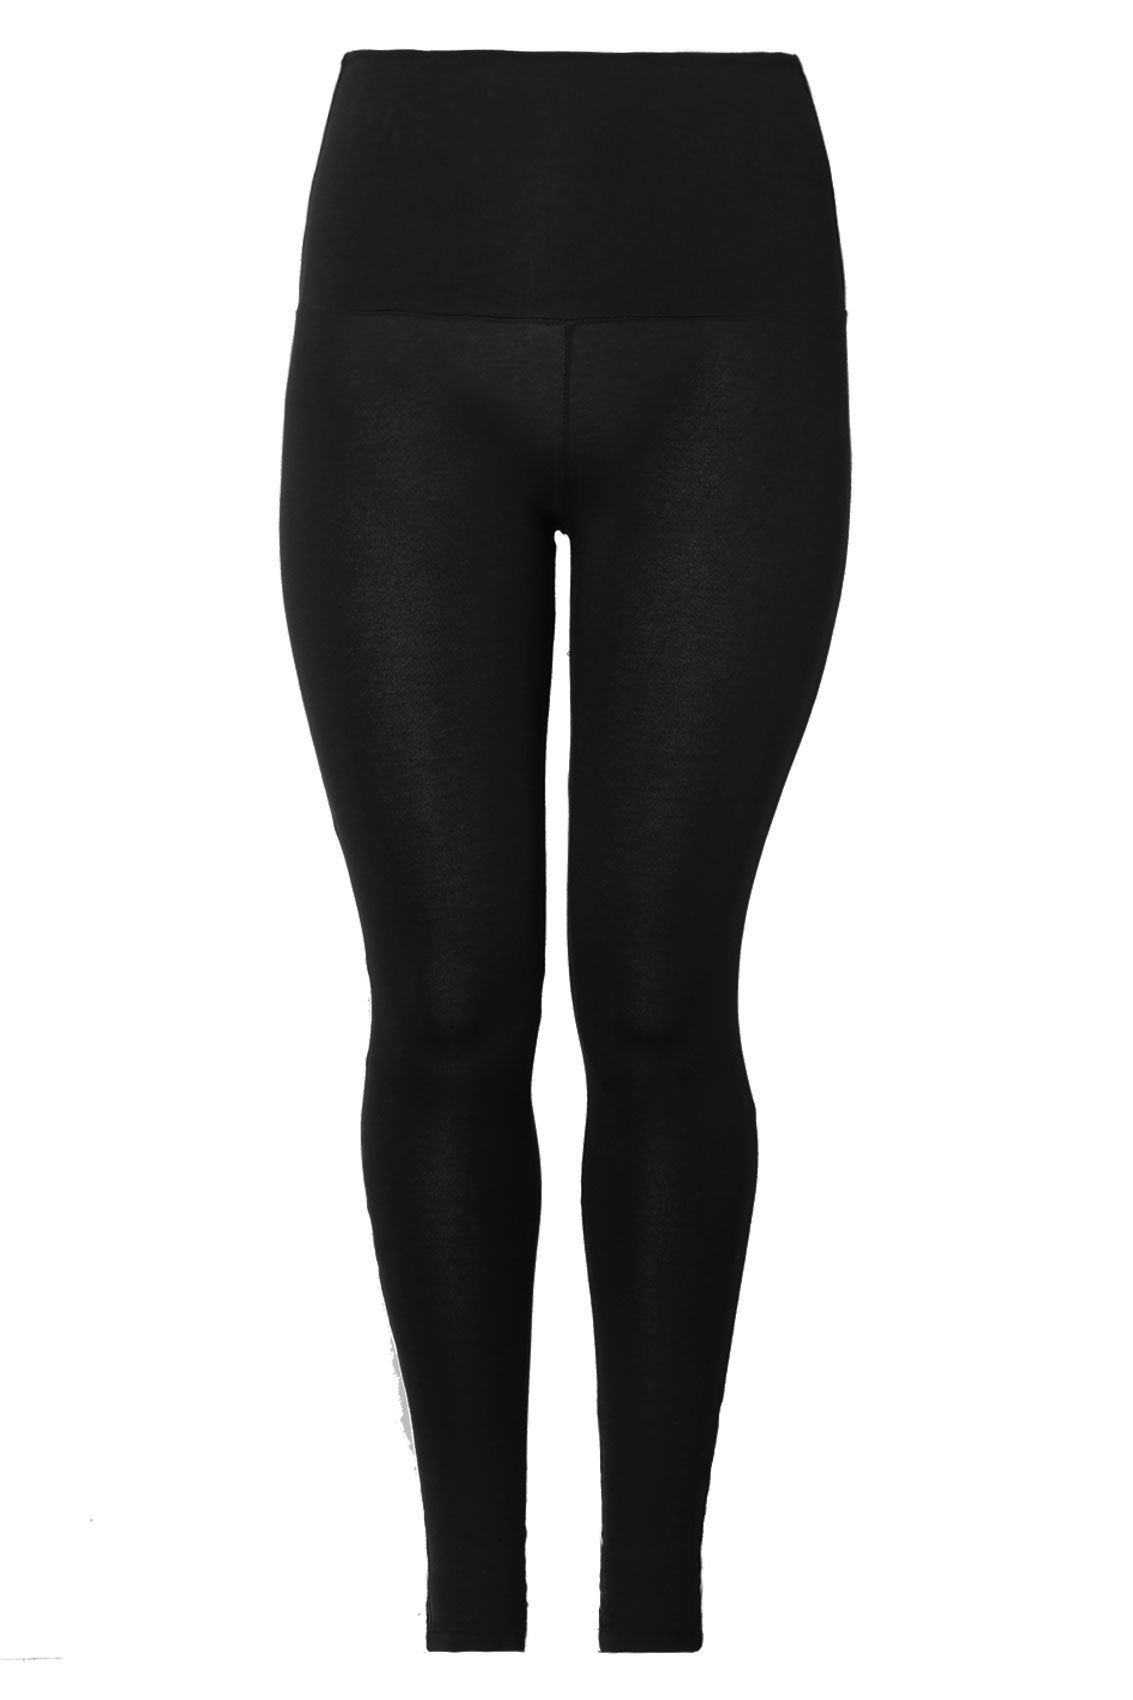 a117efe3113a5 Black TUMMY CONTROL Soft Touch Leggings Plus Size 16 to 36 | Casual ...